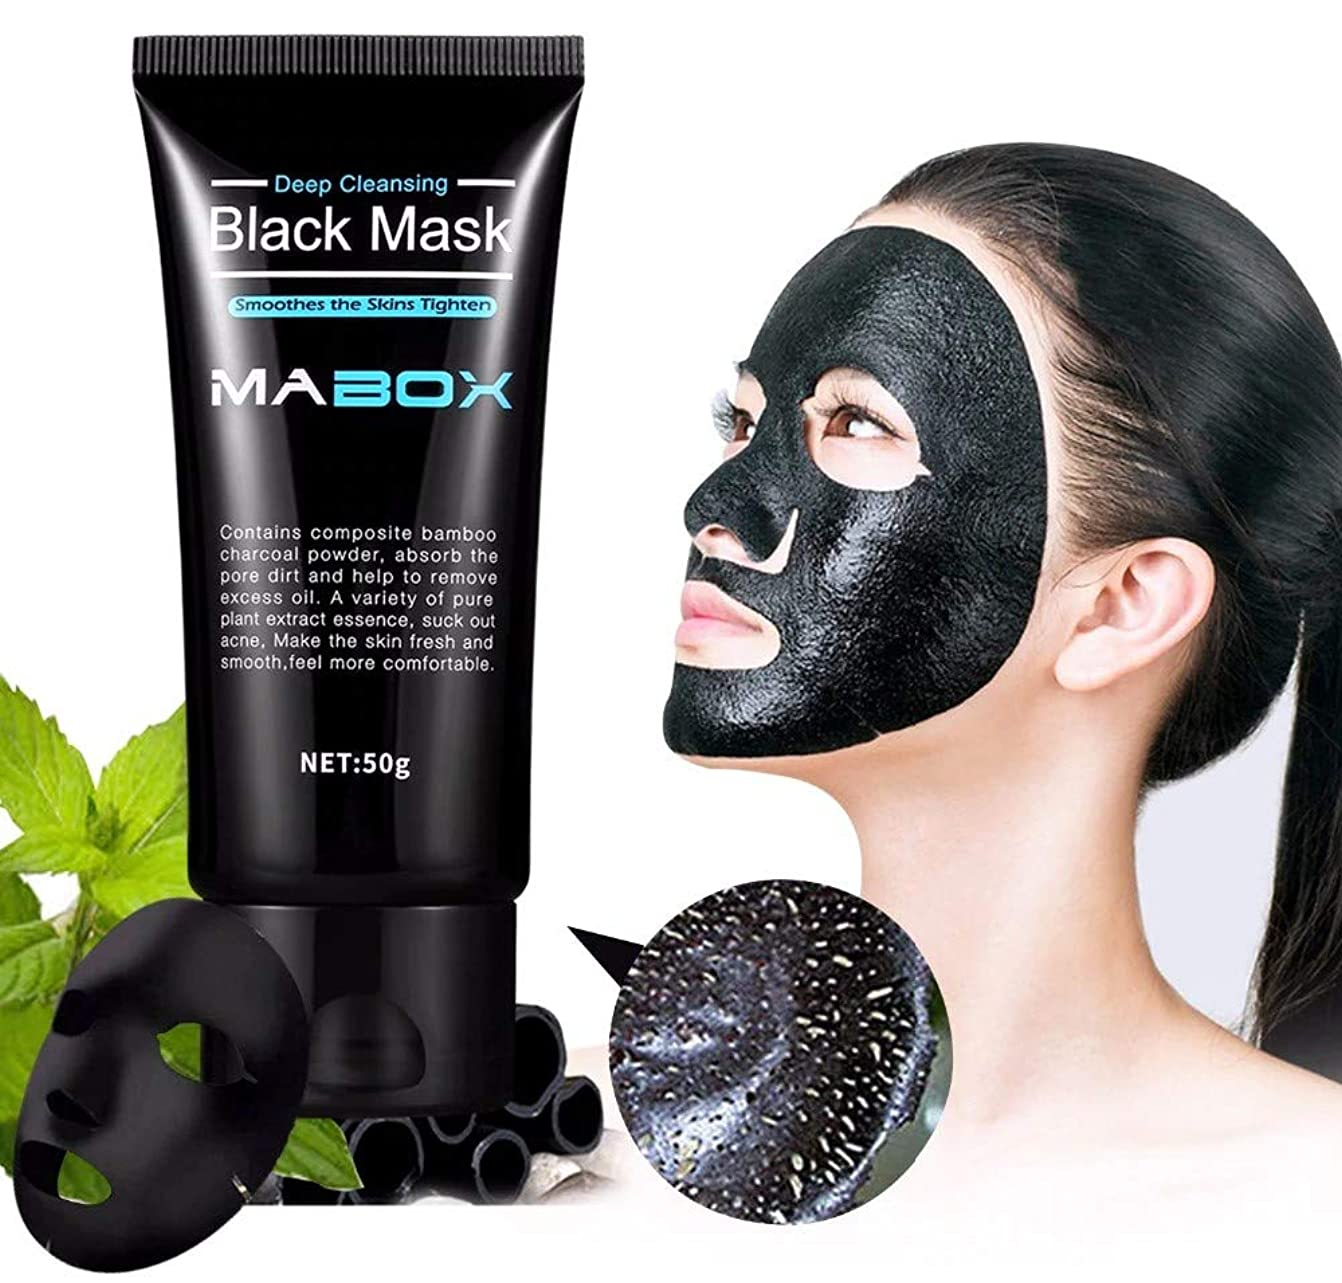 周術期神聖要件Mabox Black Mask Peel Off Bamboo Charcoal Purifying Blackhead Remover Mask Deep Cleansing for AcneScars Blemishes WrinklesFacial